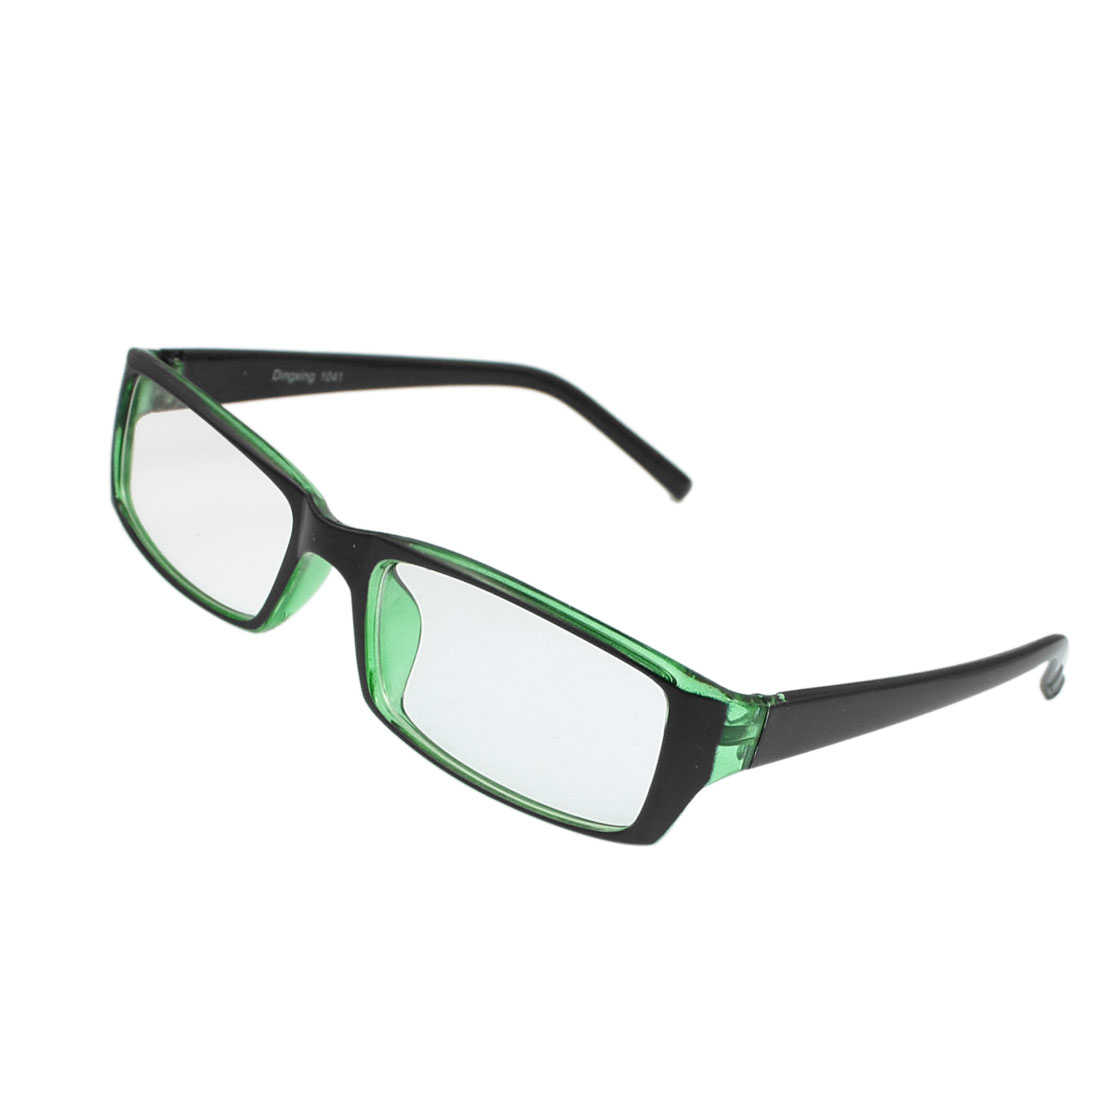 Women Men Plastic Arms Rectangle Shape Lens Plain Plano Glasses Black Green